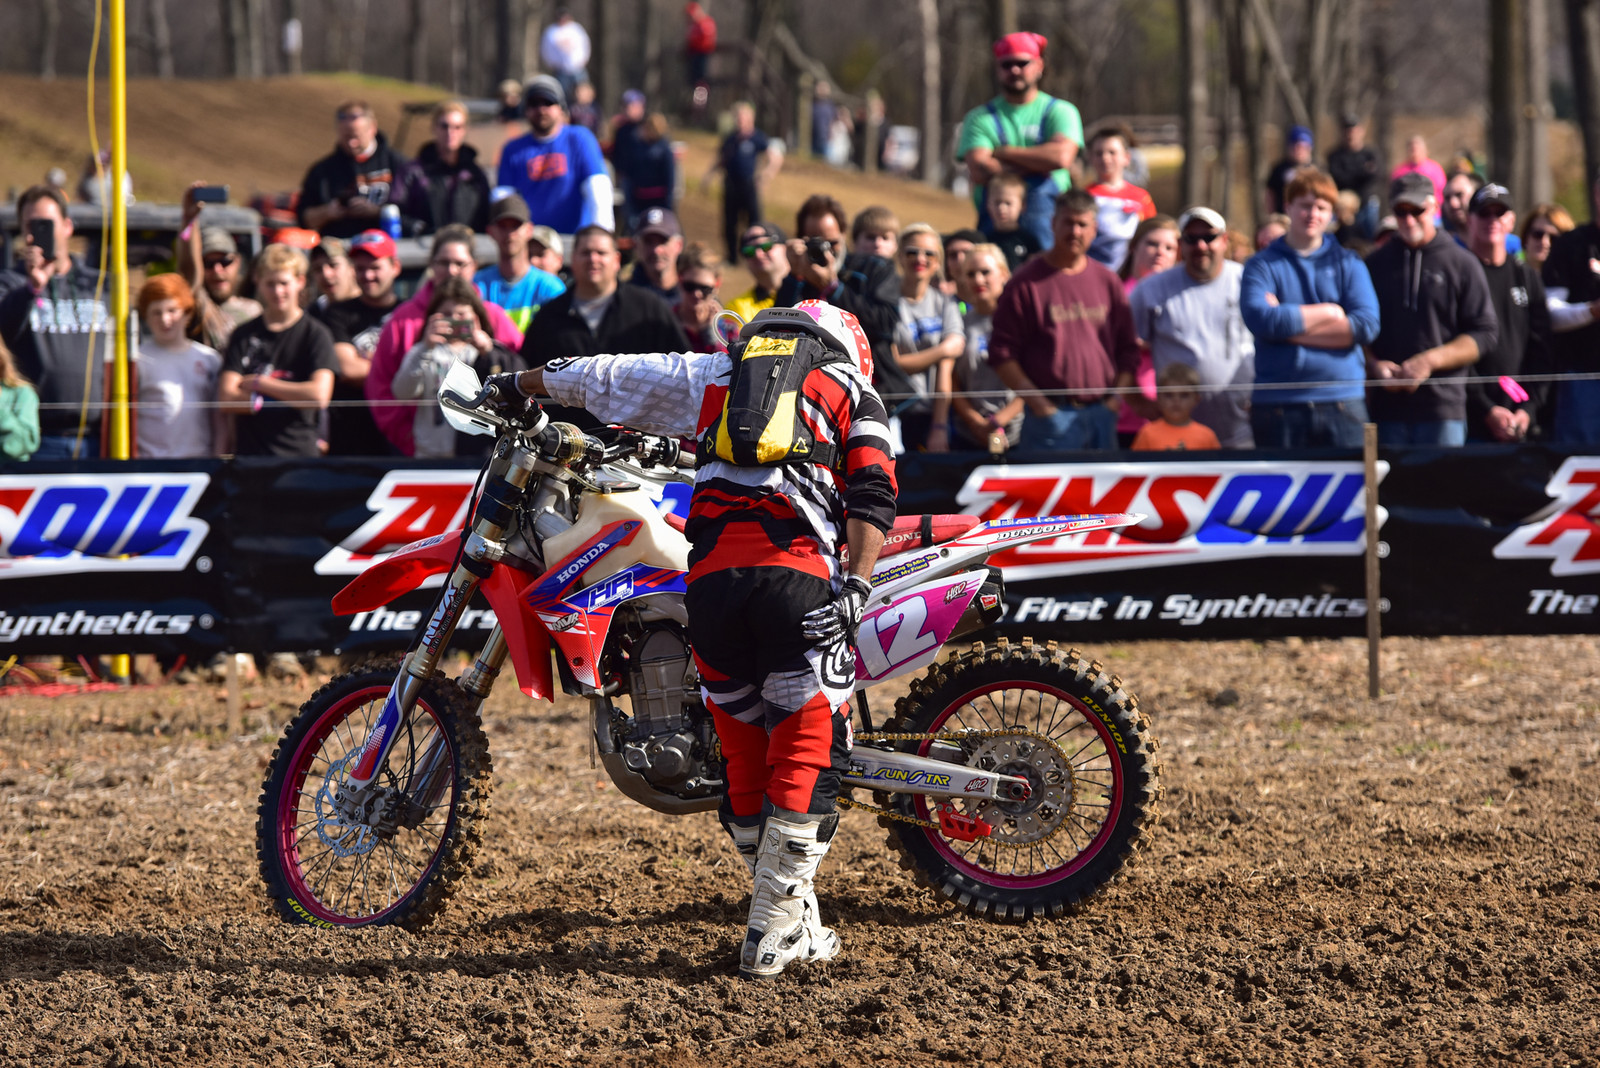 Takeshi Koikeda - Photo Blast: Ironman GNCC - Motocross Pictures - Vital MX